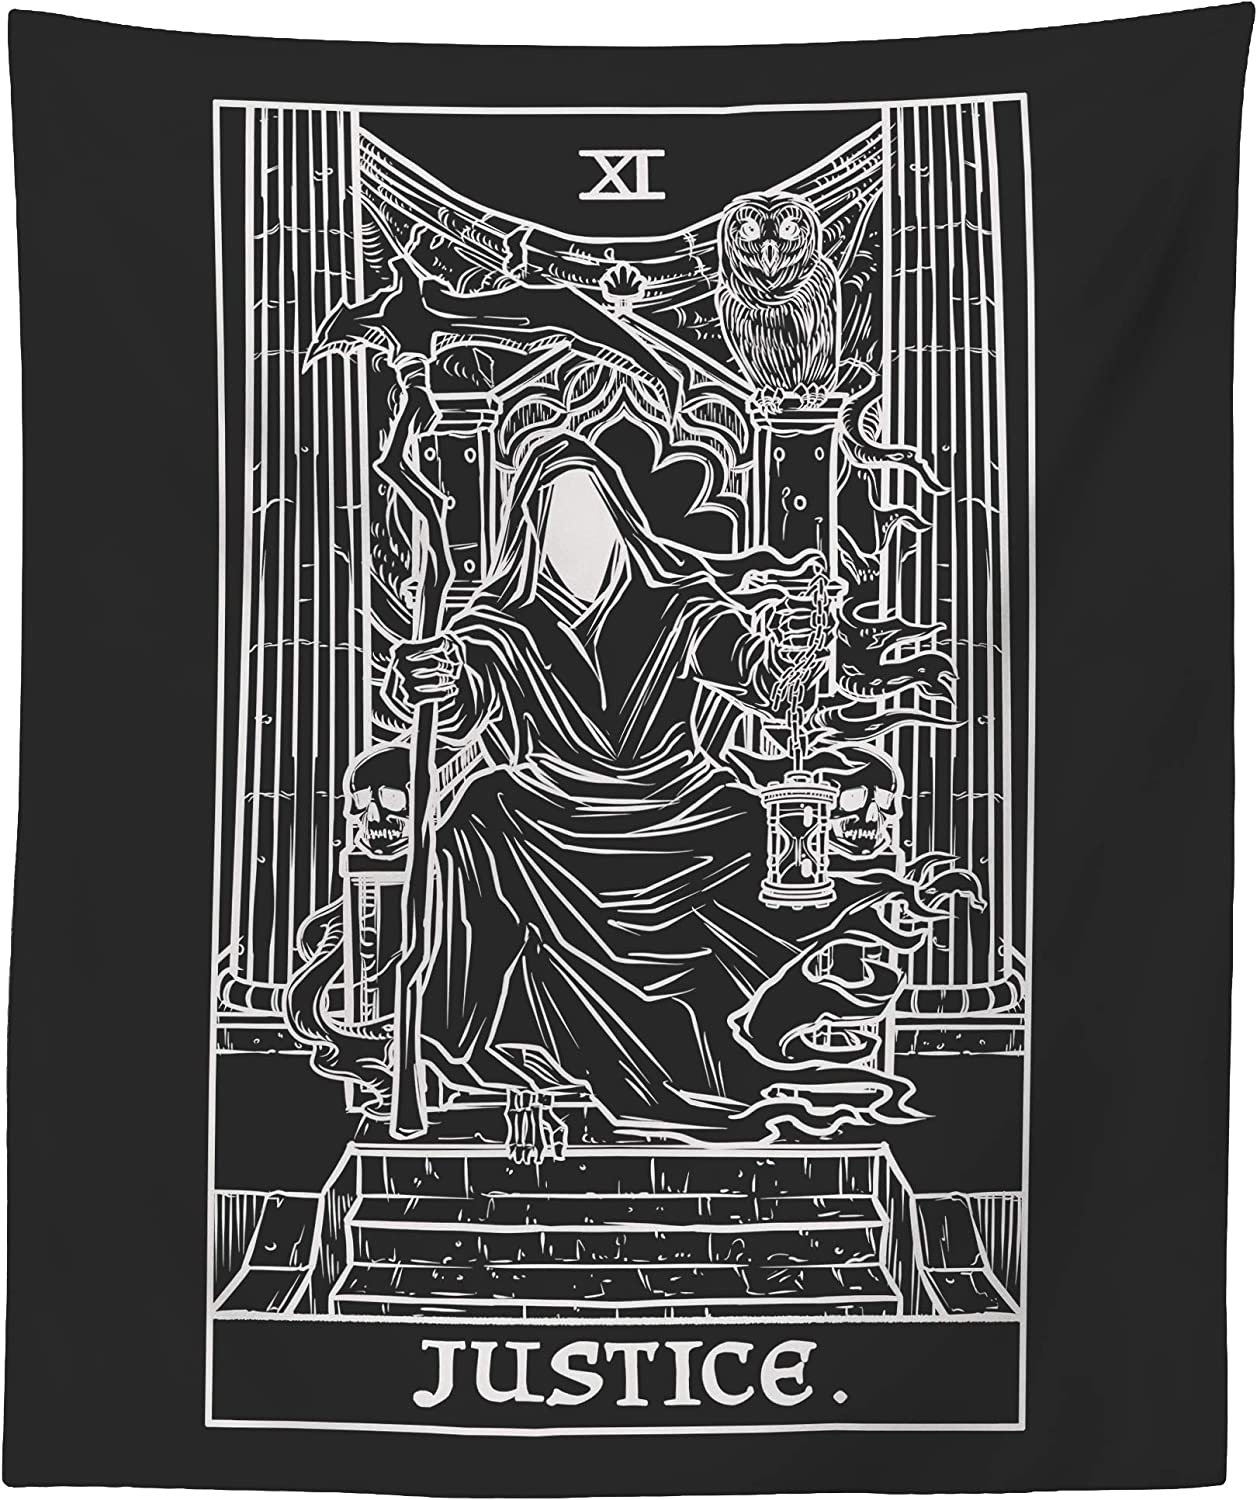 The Ghoulish Garb Justice Tarot Card Tapestry (Black & White) - Grim Reaper - Gothic Halloween Home Decor Wall Hanging (60